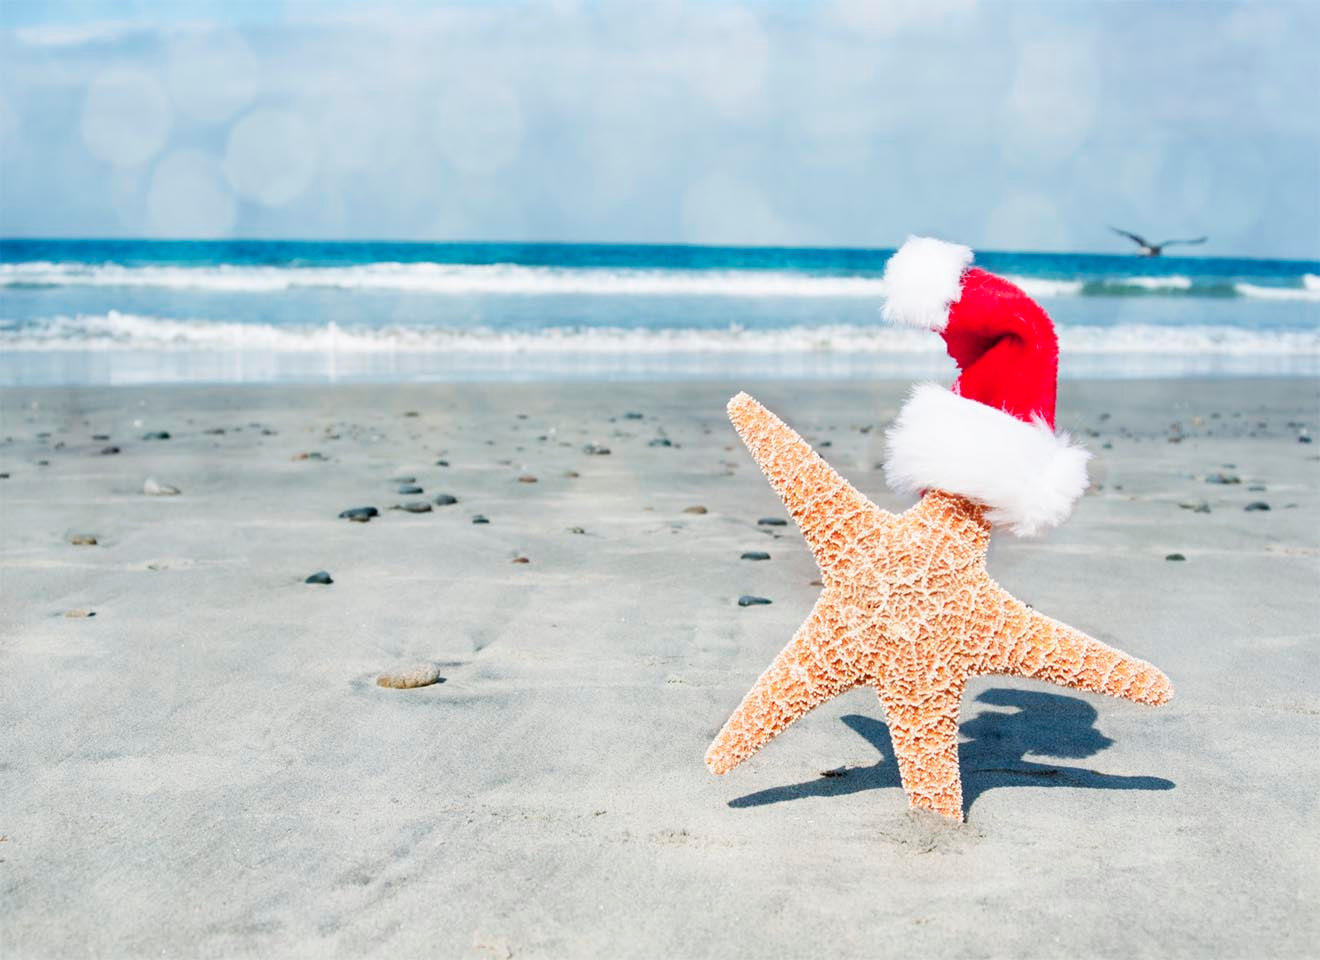 Christmas In July Background Images.44 Christmas At The Beach Wallpaper On Wallpapersafari